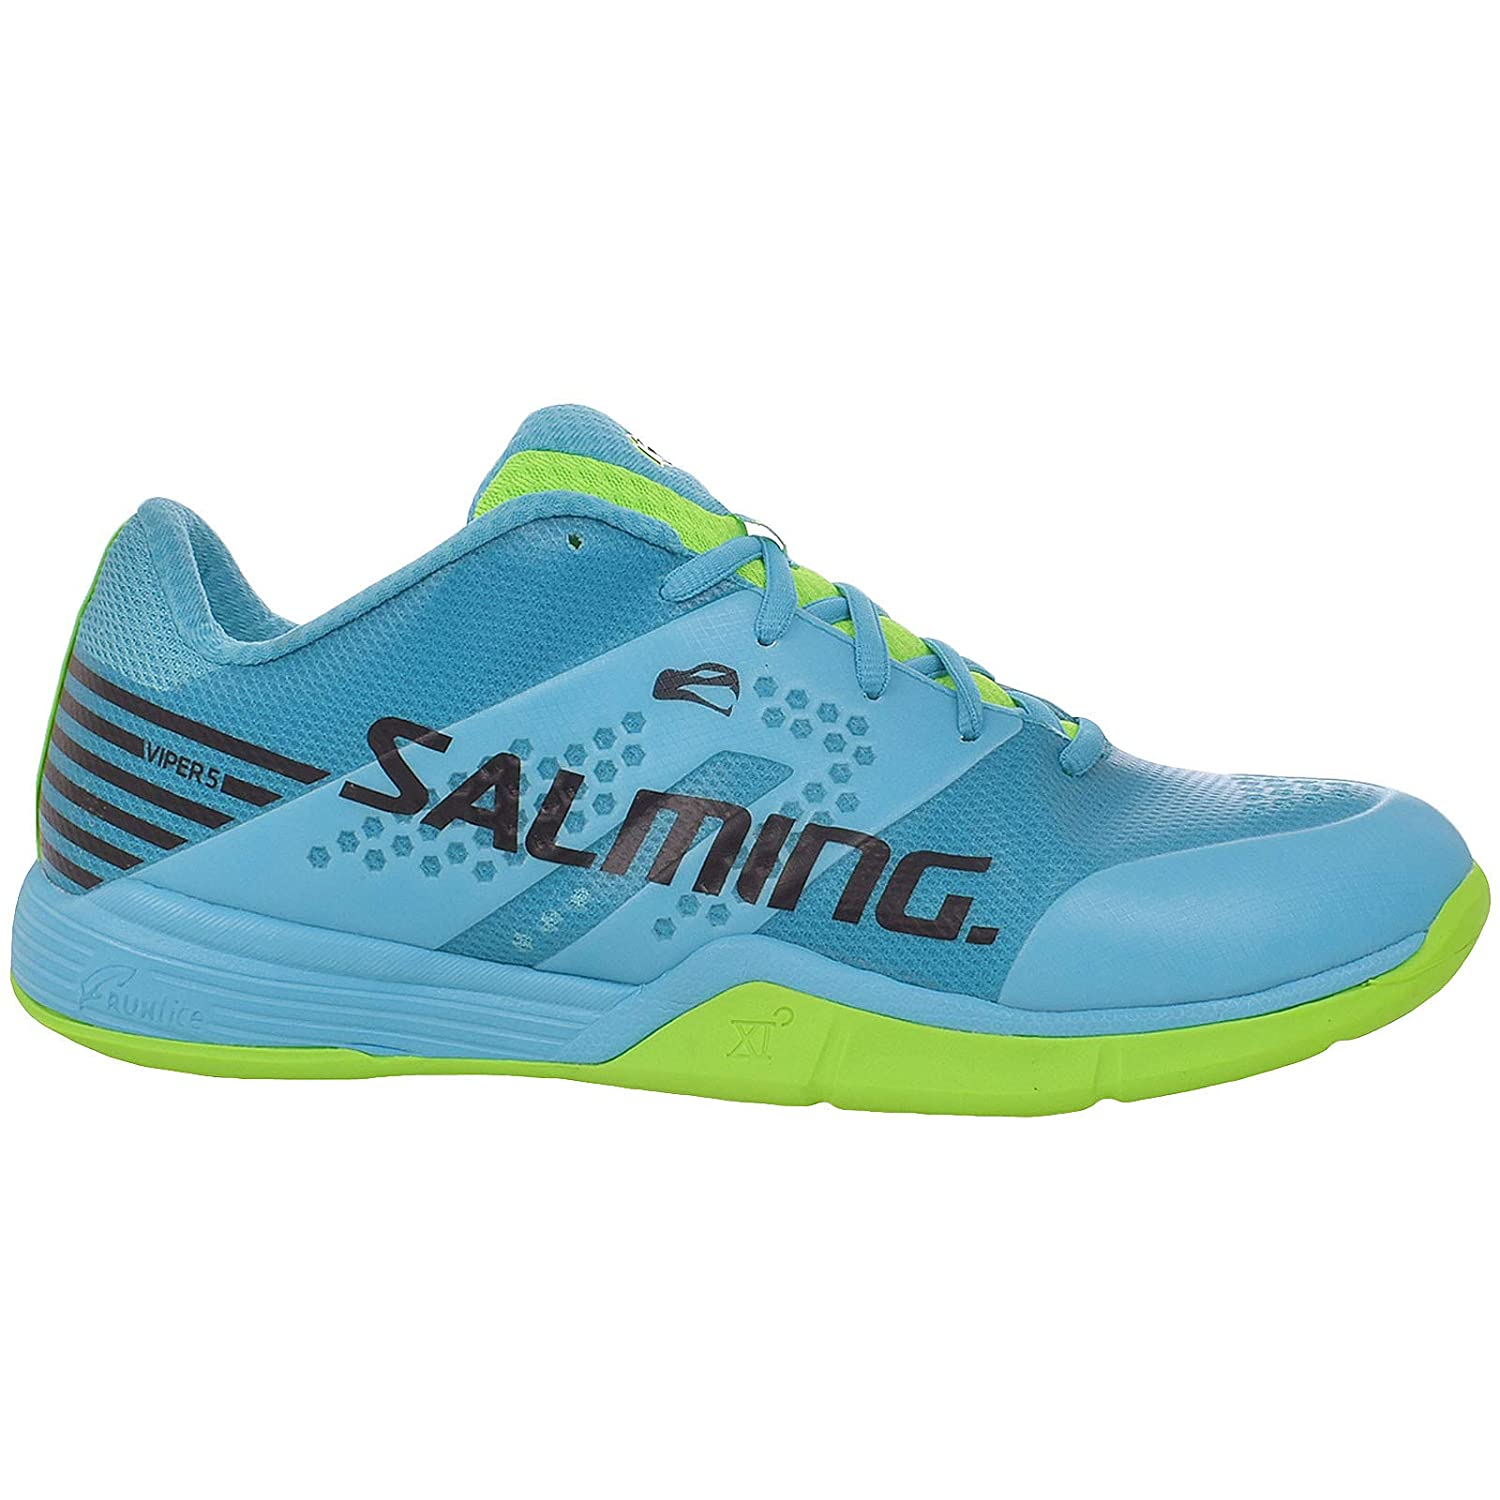 Salming Herren Viper 5 Sports Indoor Court Turnschuhe